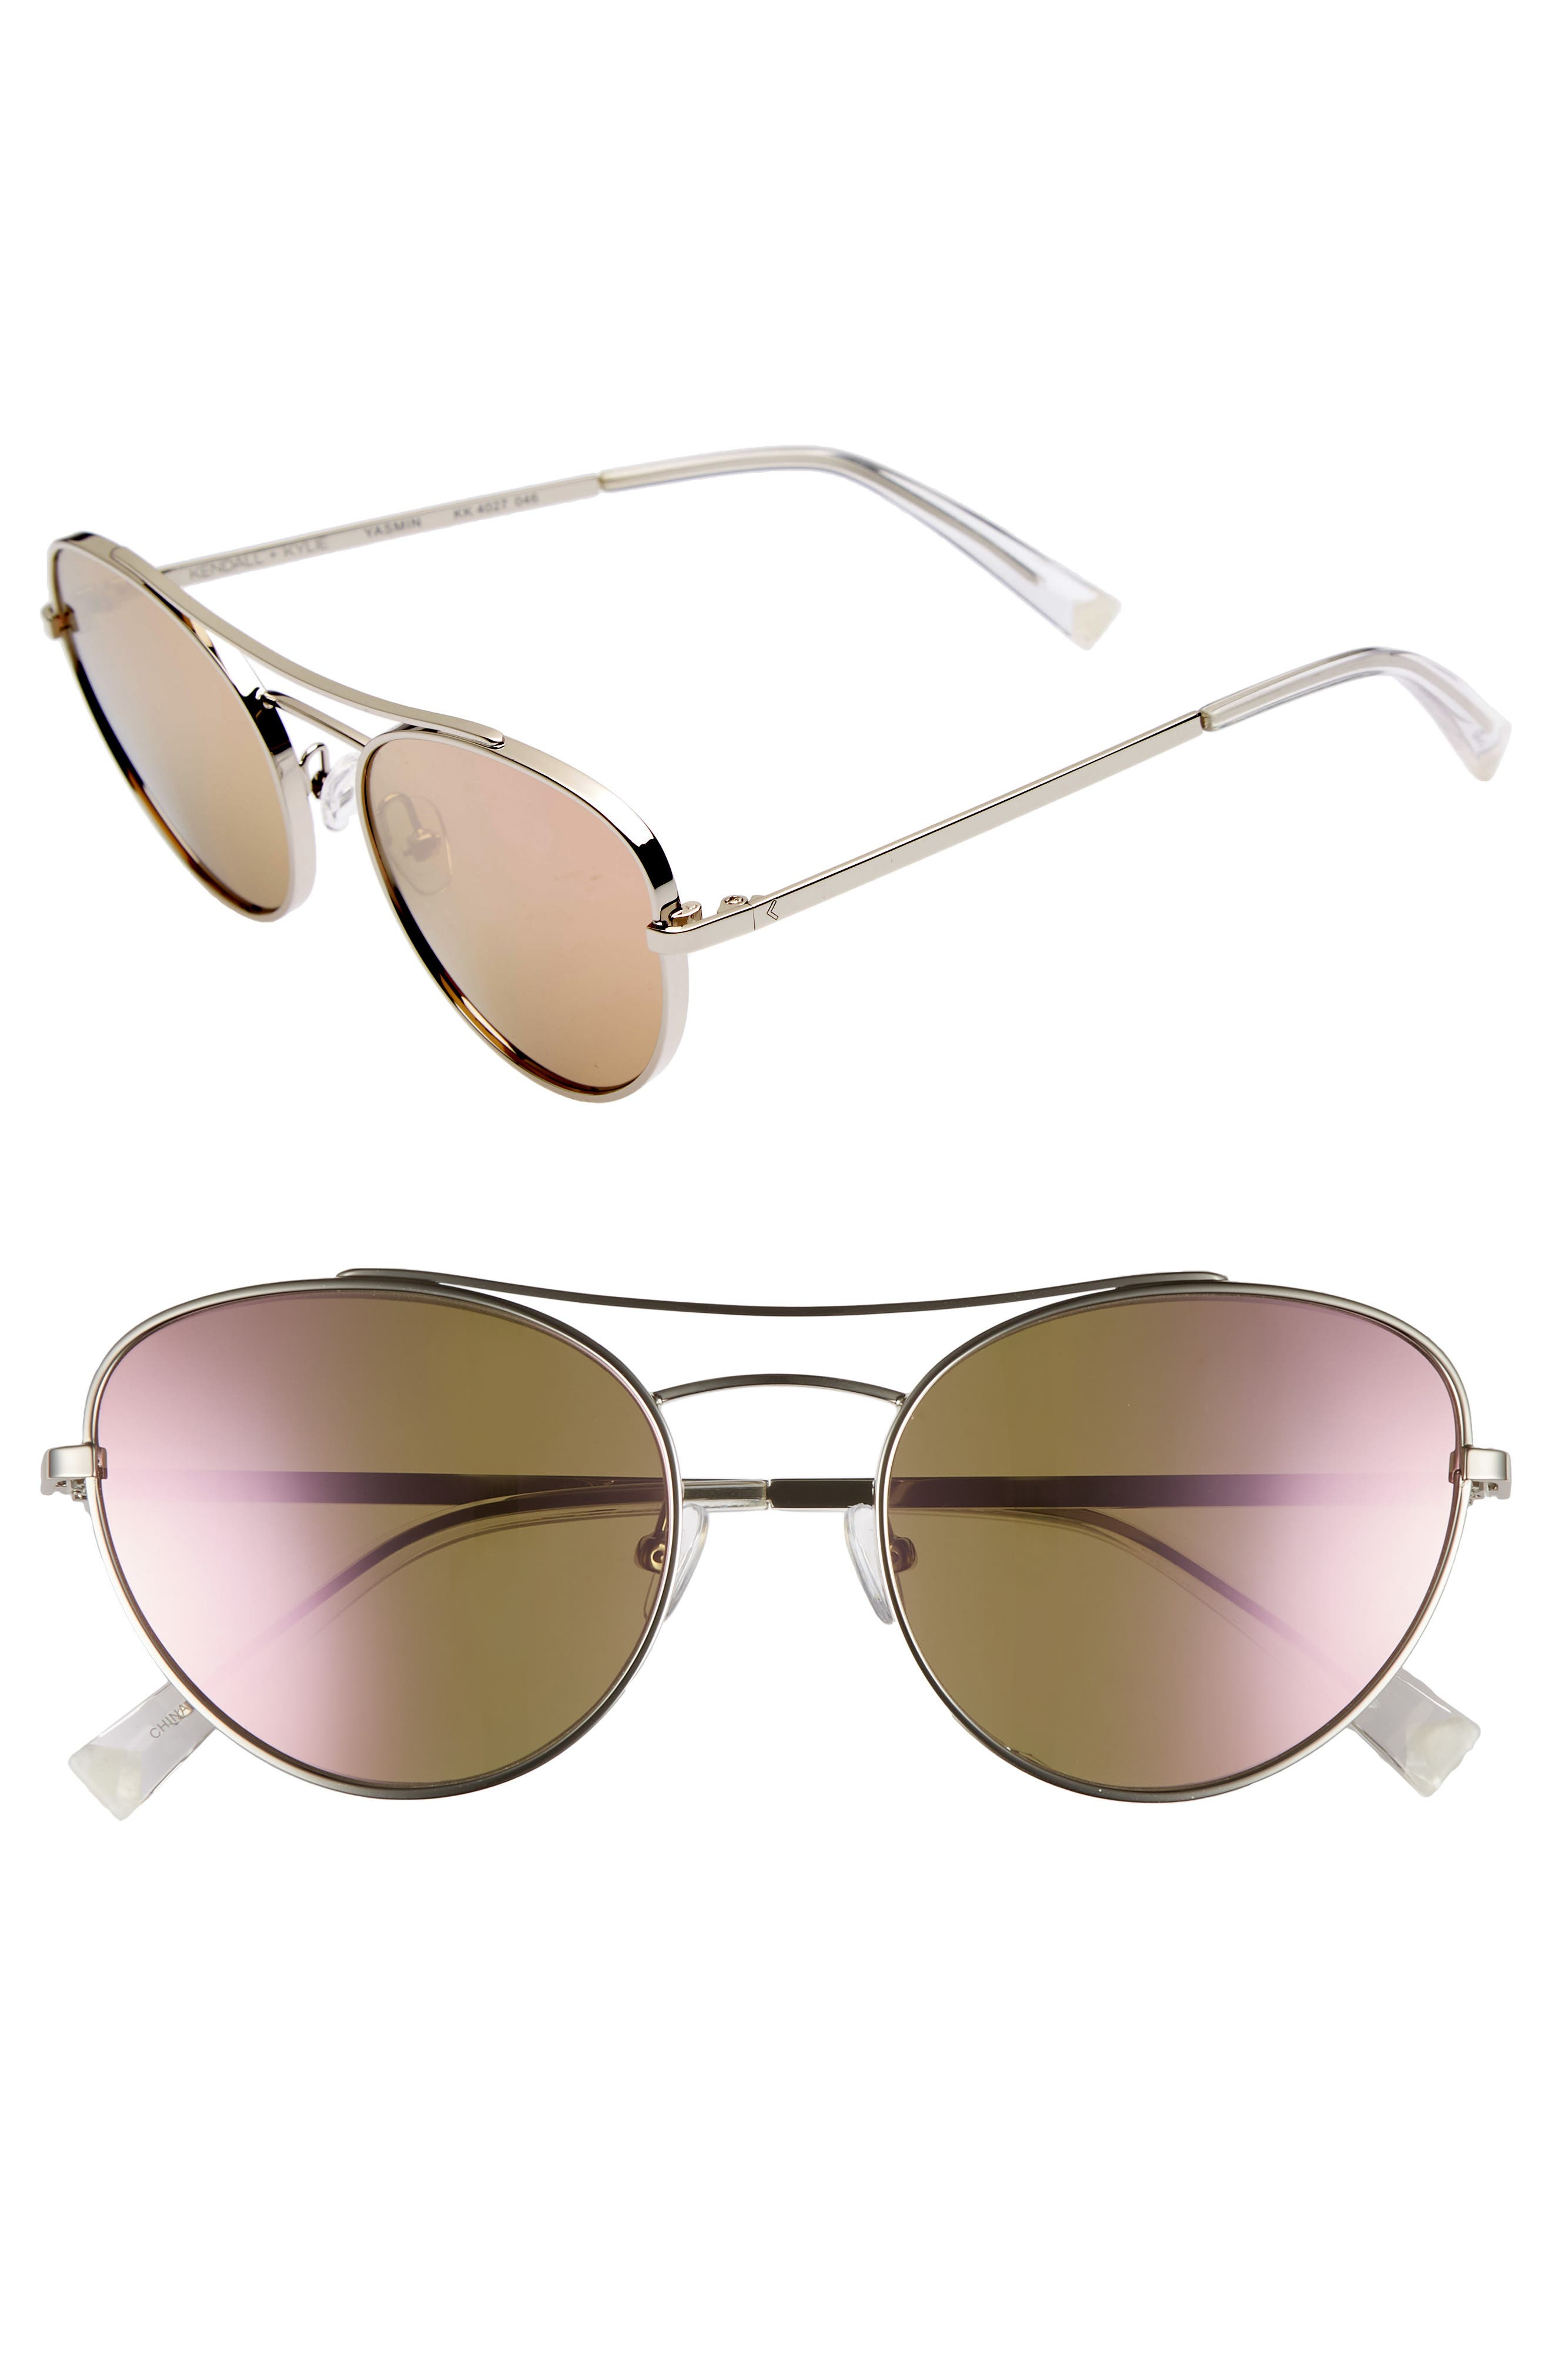 Yasmin 55mm Aviator Sunglasses,                         Main,                         color, Silver/ Rose Gold Mirror